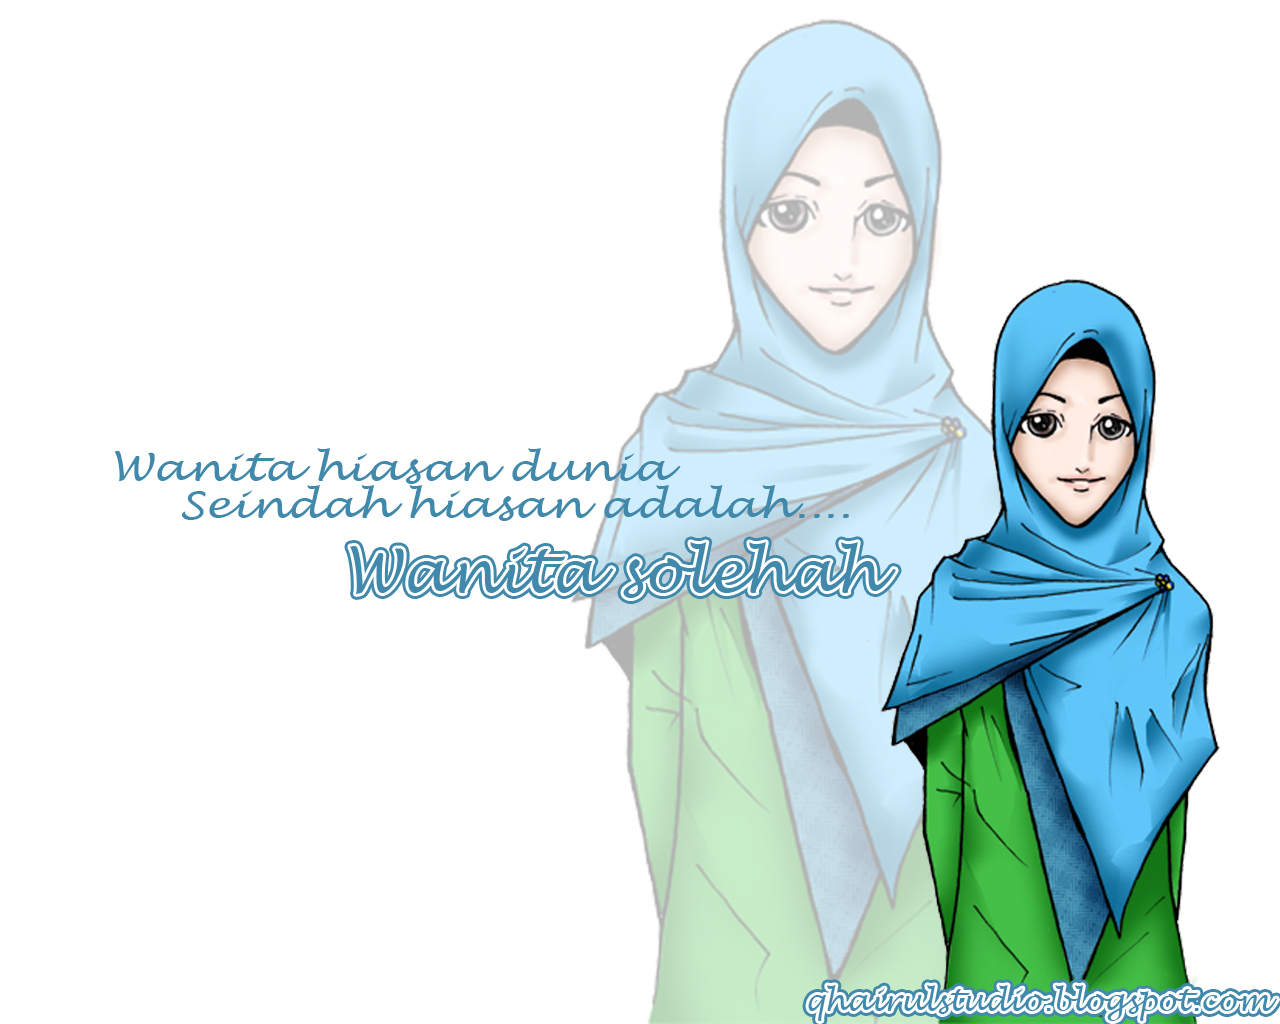 Wallpapernatureandvintage Wallpaper Wanita Soleha